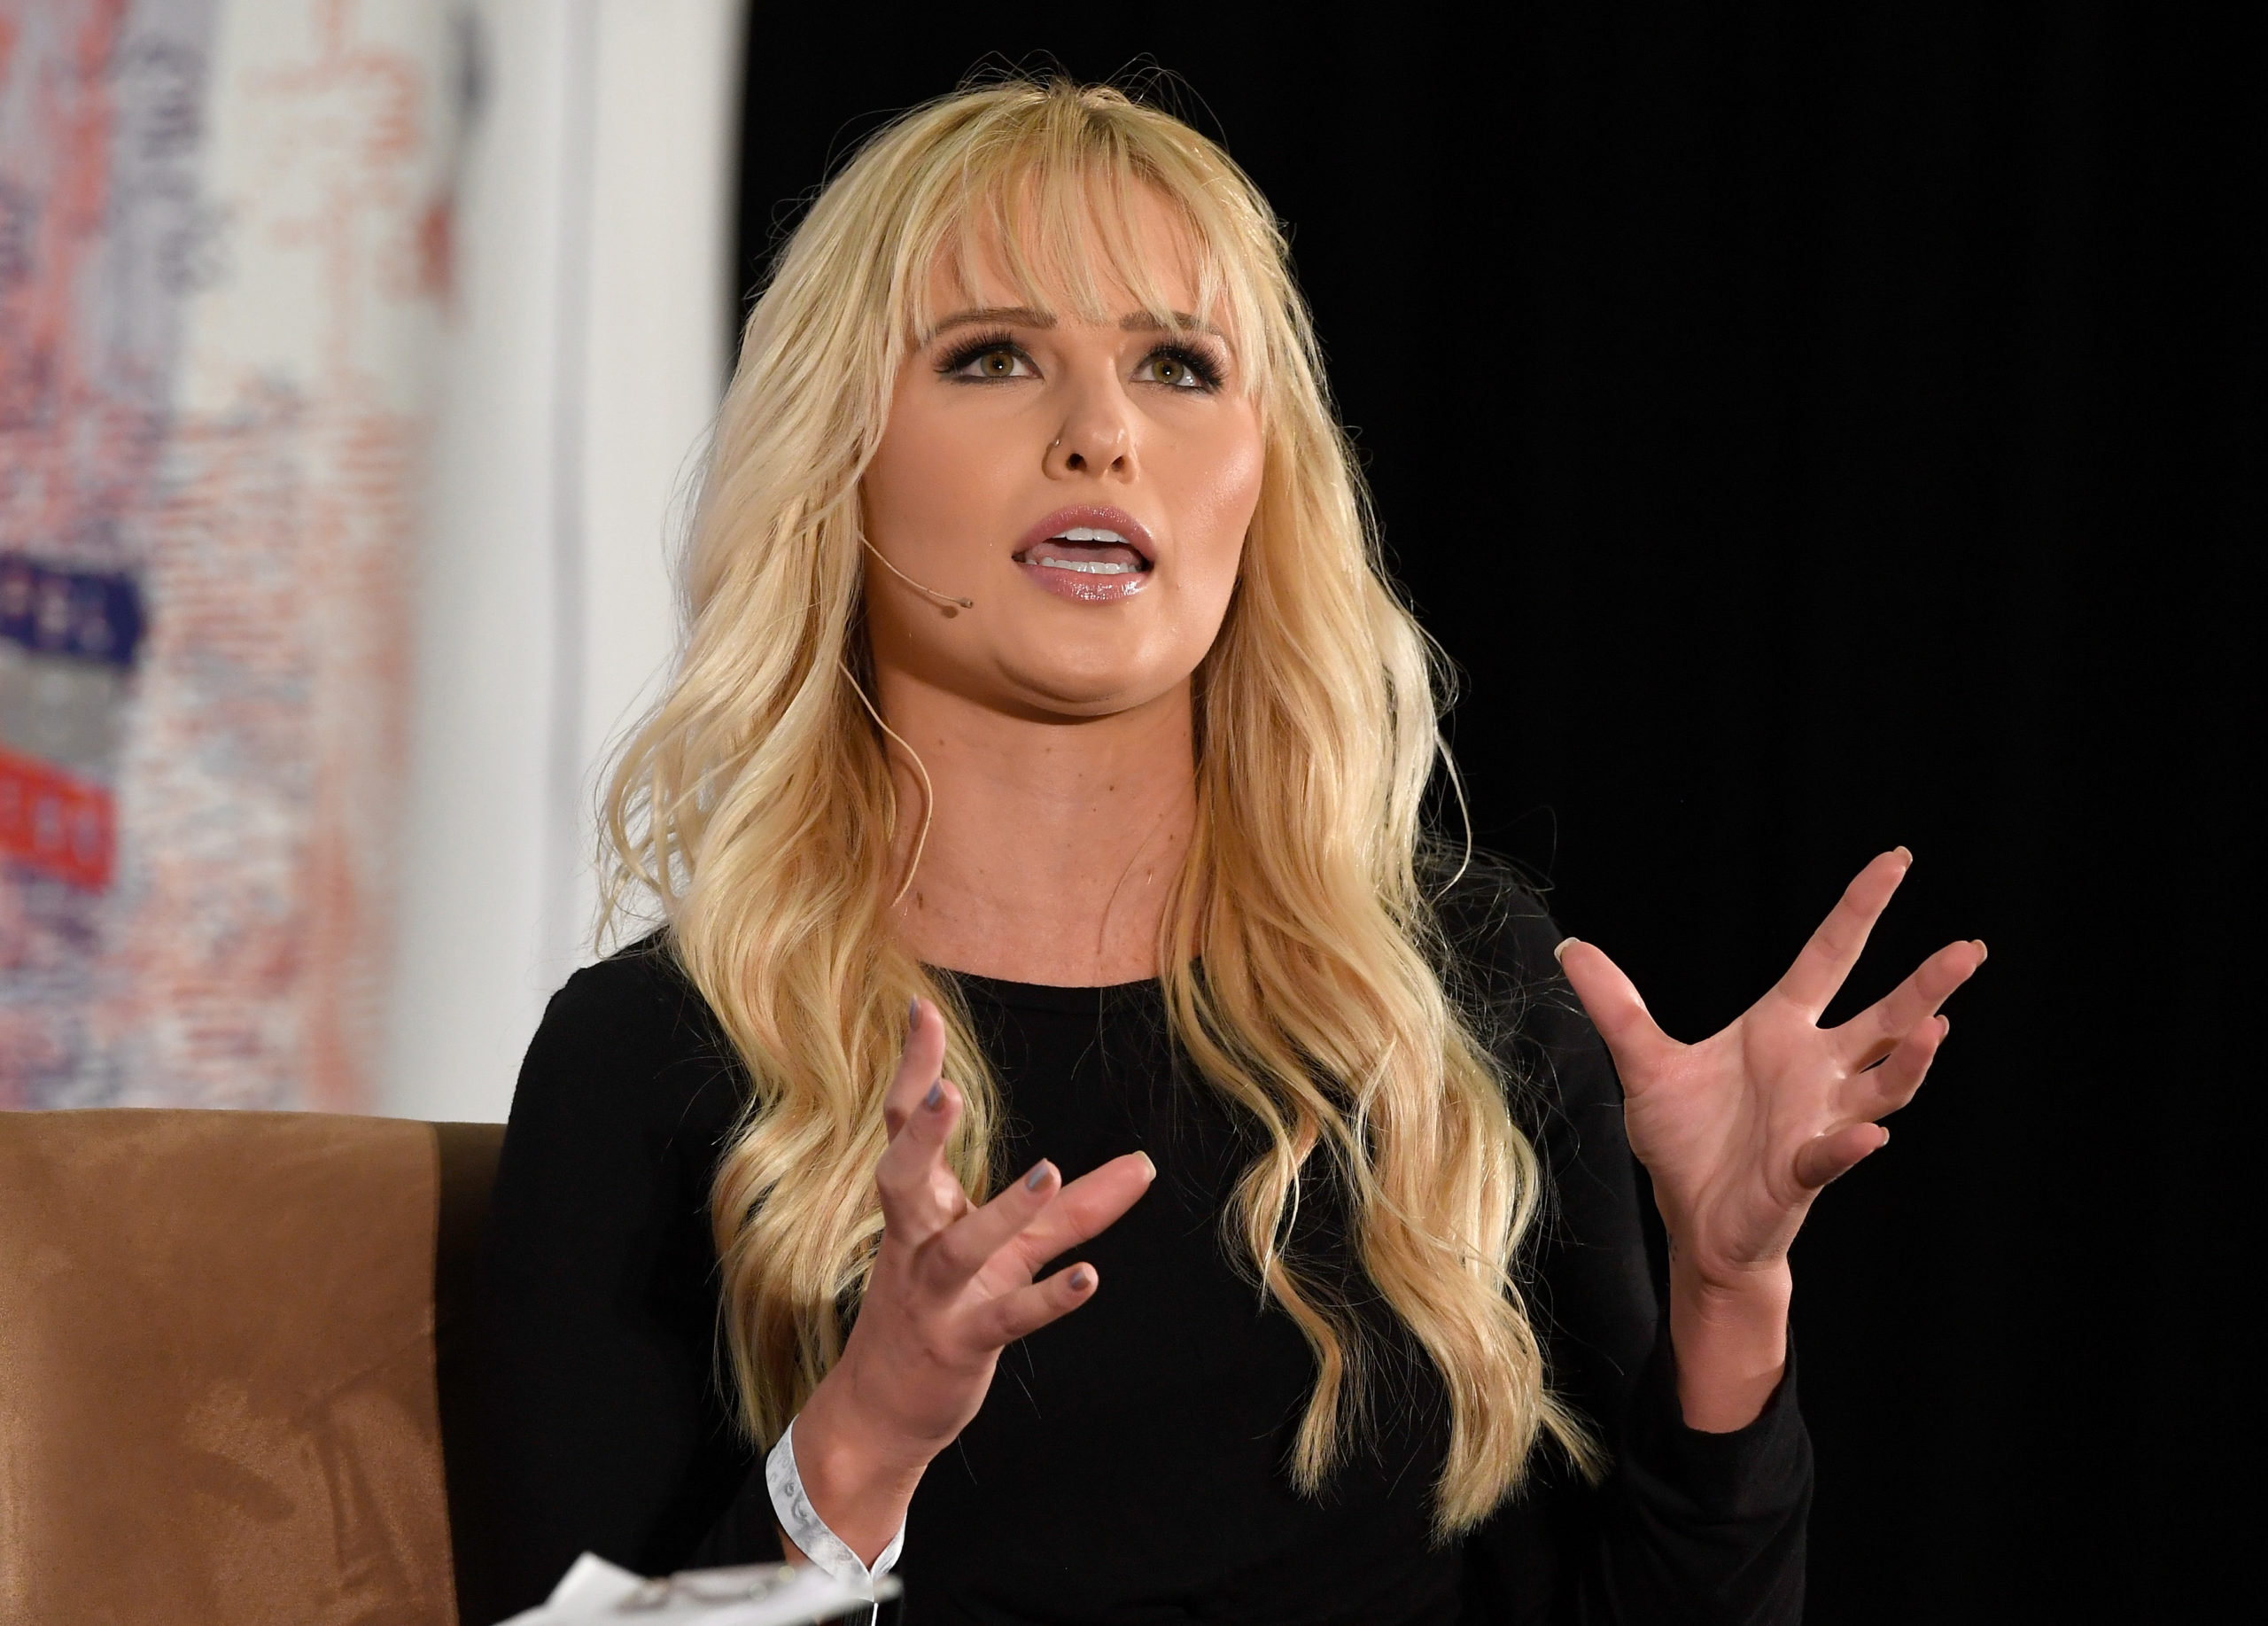 Tomi Lahren speaks onstage at Politicon 2018 at Los Angeles Convention Center on October 21, 2018.